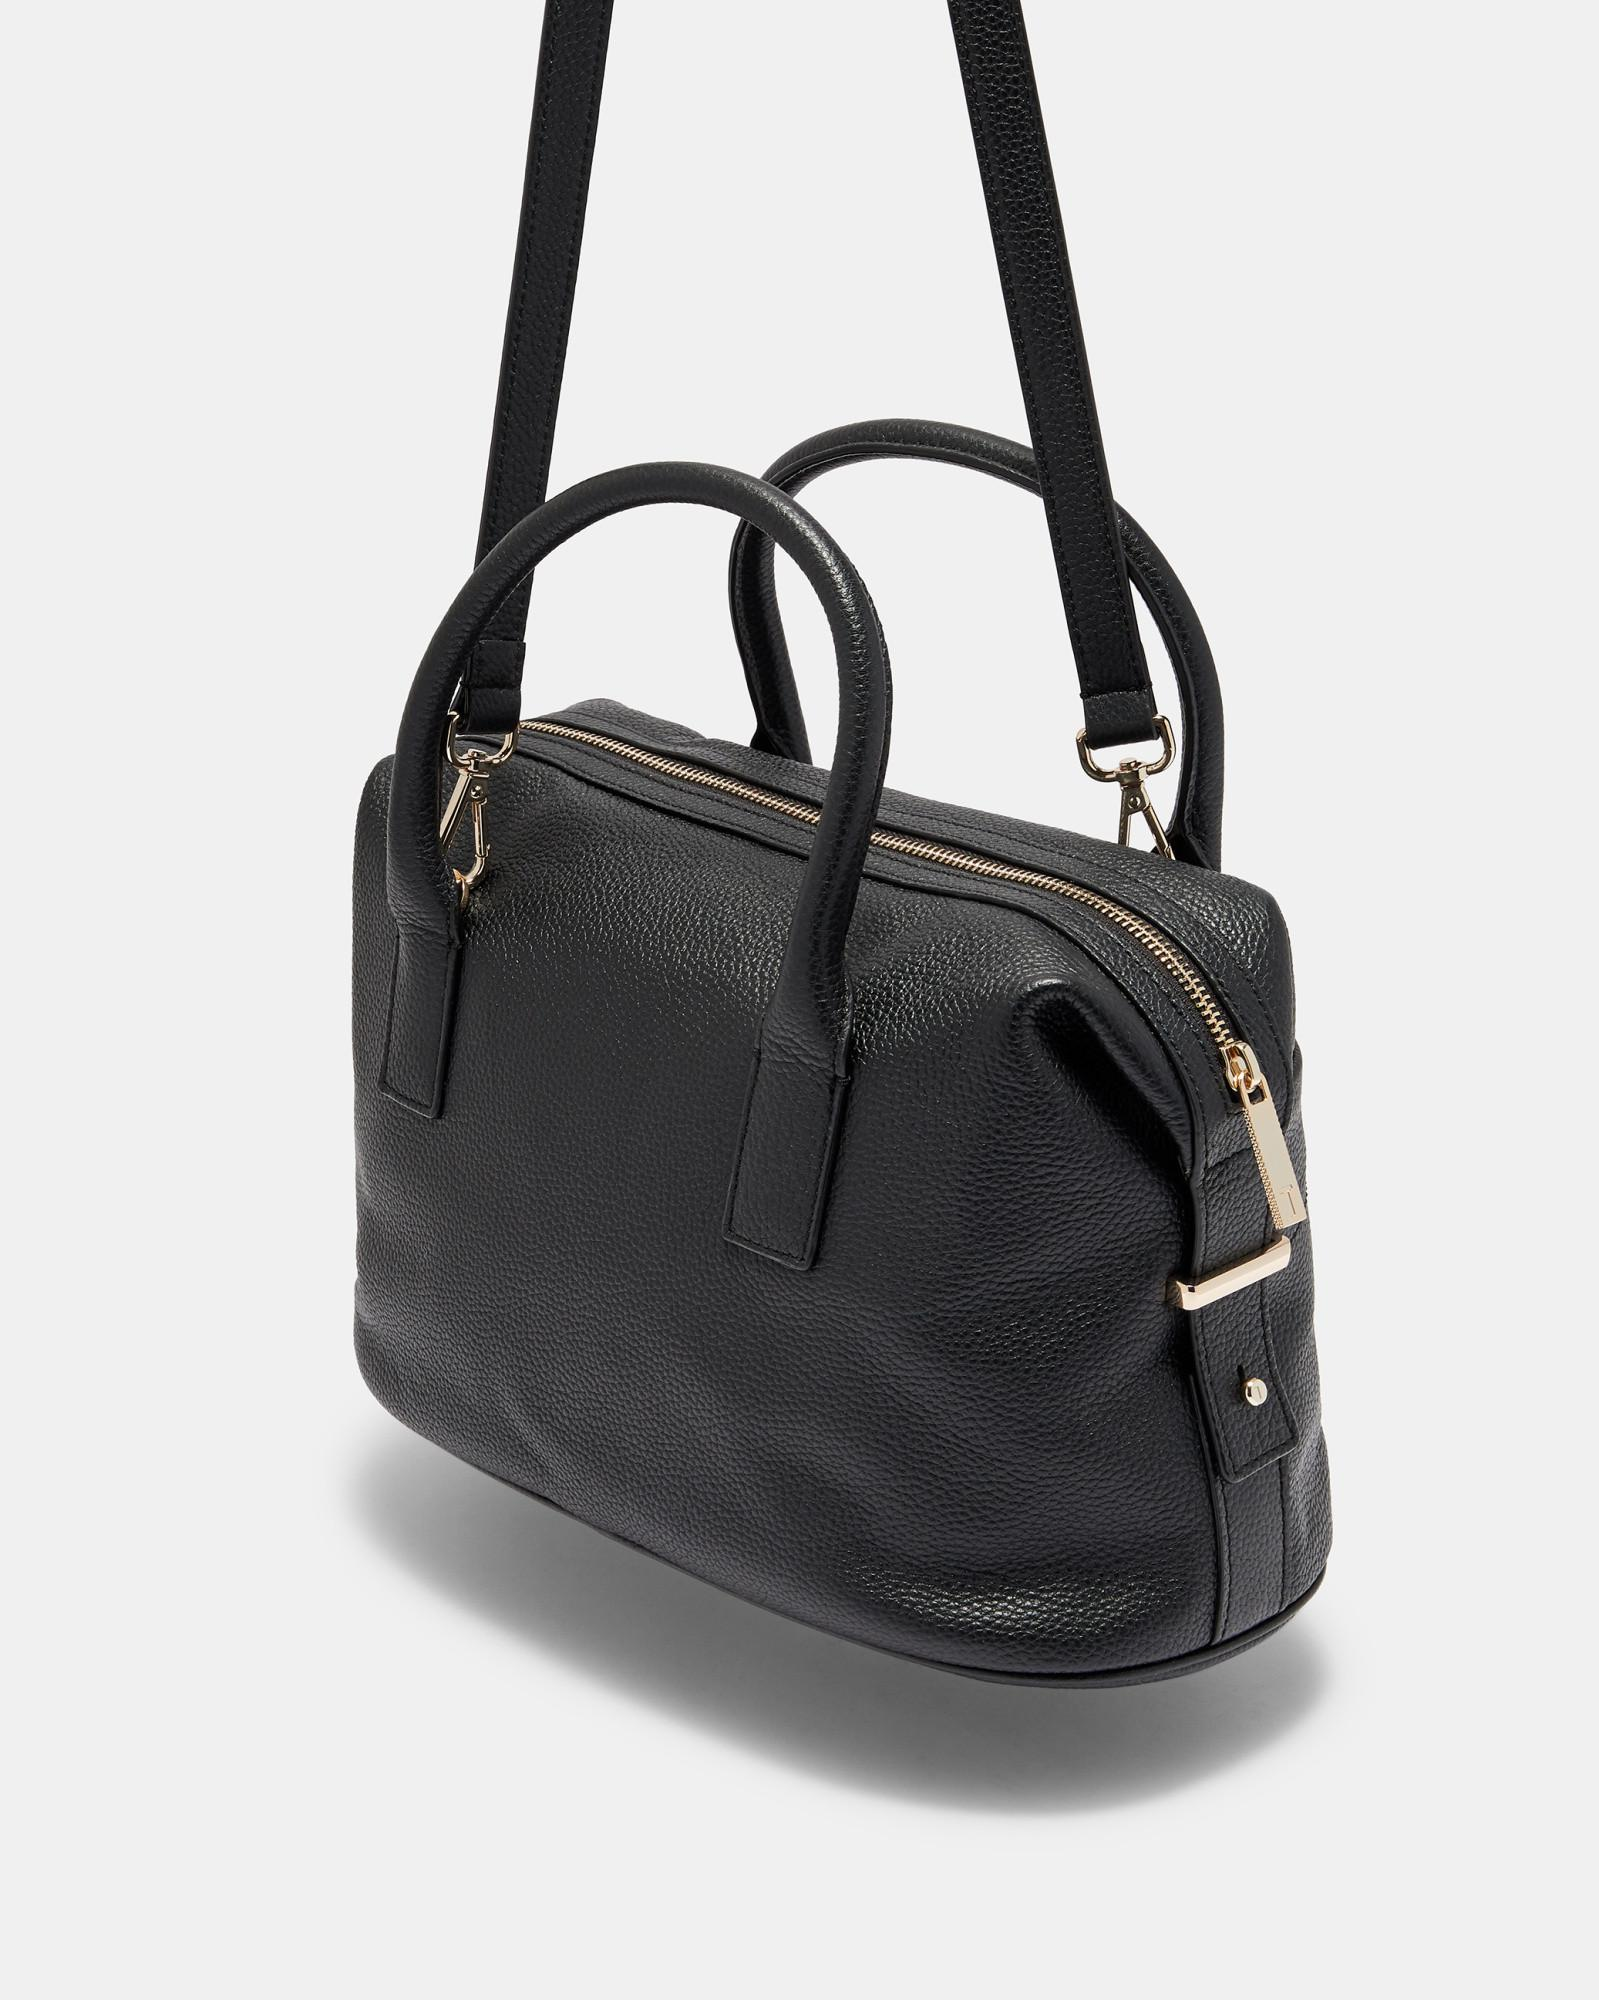 fede01b8d684 Lyst - Ted Baker Bow Detail Large Leather Bowler Bag in Black